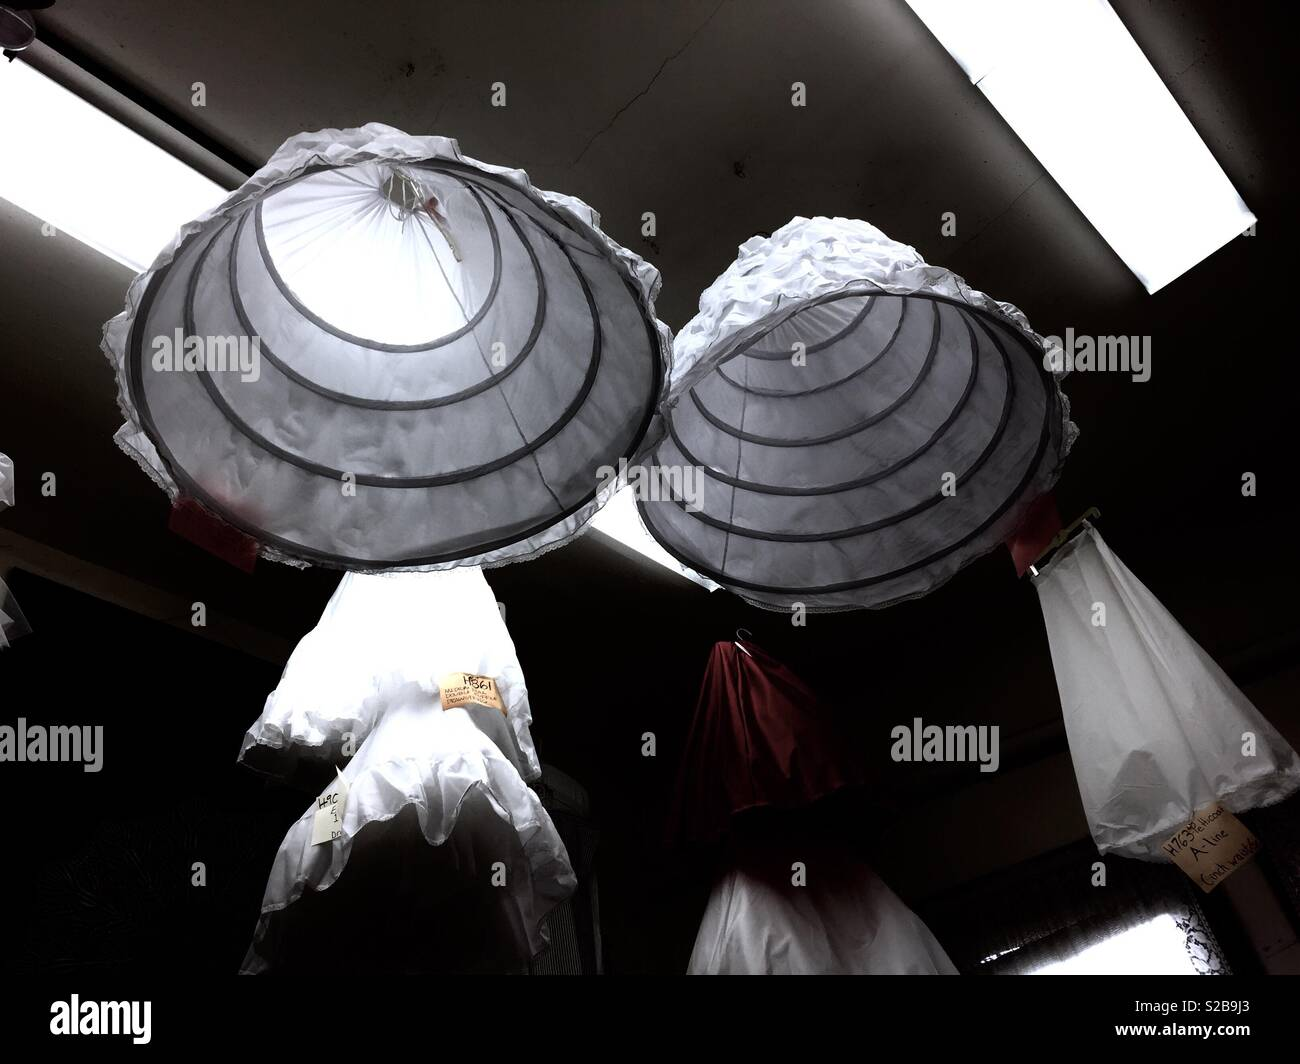 Hoop skirts hanging from the ceiling. Stock Photo